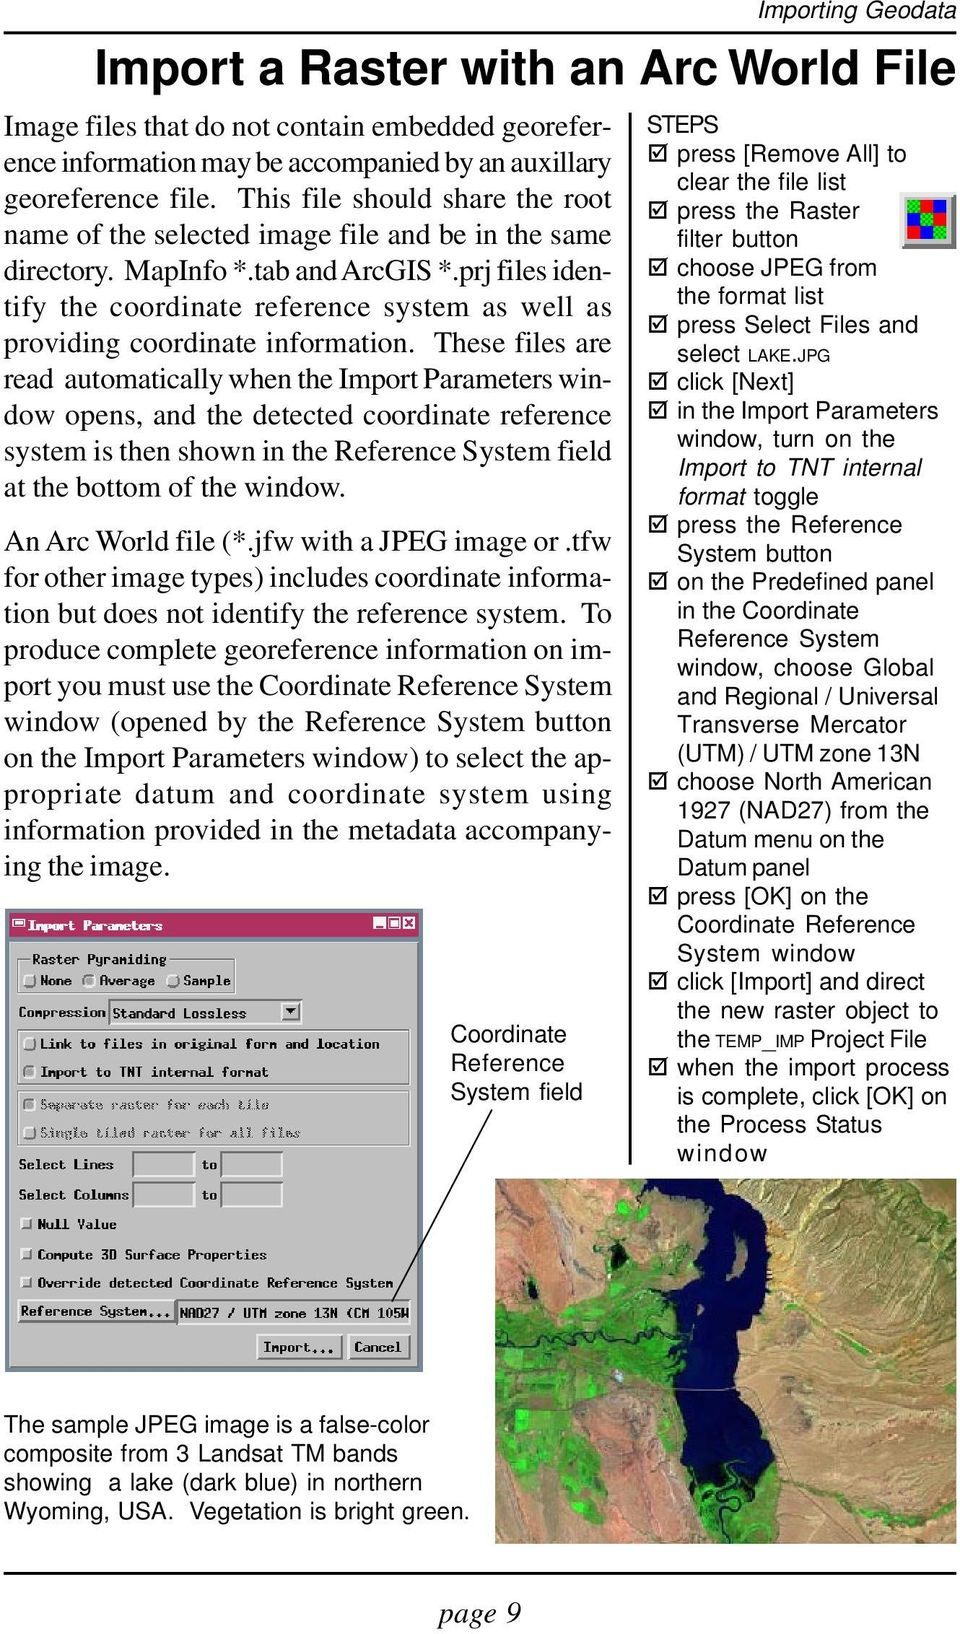 prj files identify the coordinate reference system as well as providing coordinate information.